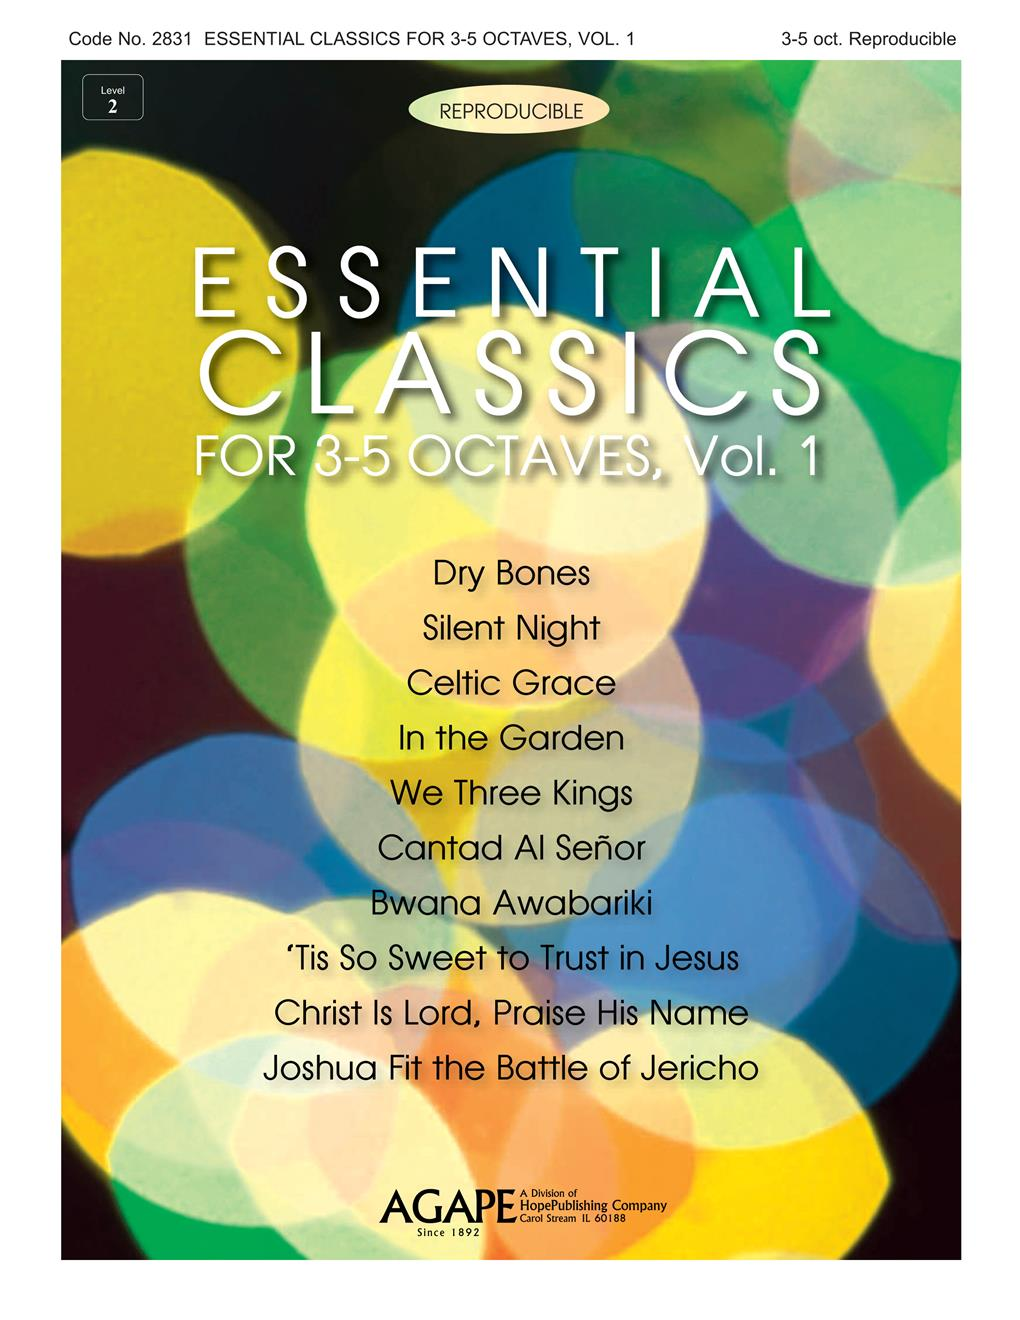 Essential Classics for 3-5 Octaves Vol. 1 (Reproducible) Cover Image